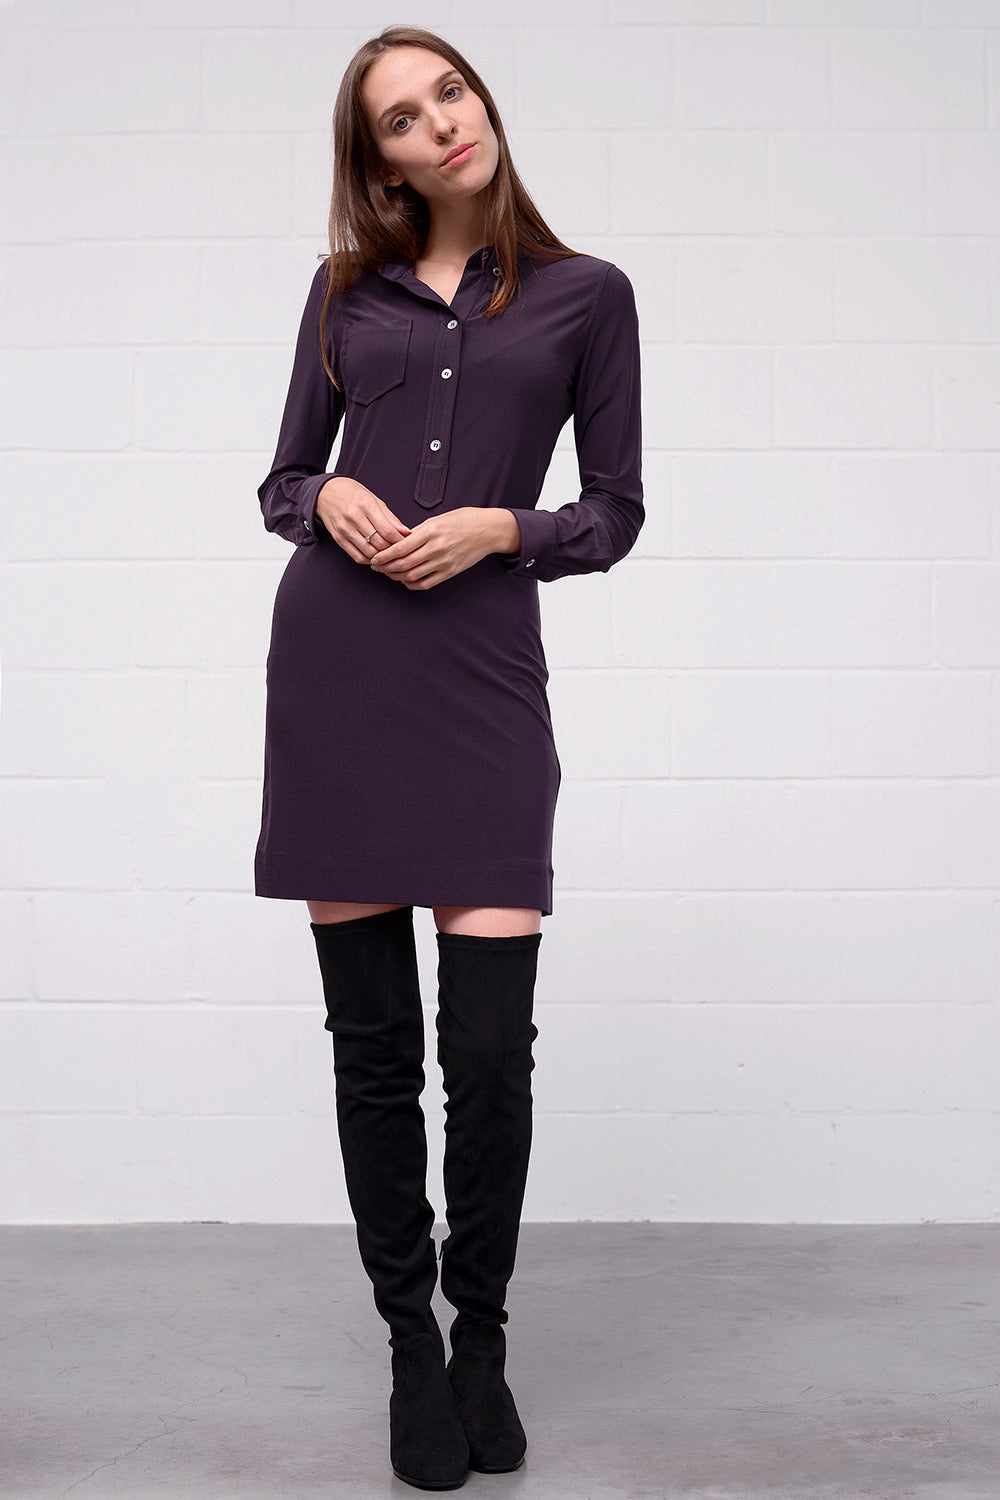 Ananea Dress - plum